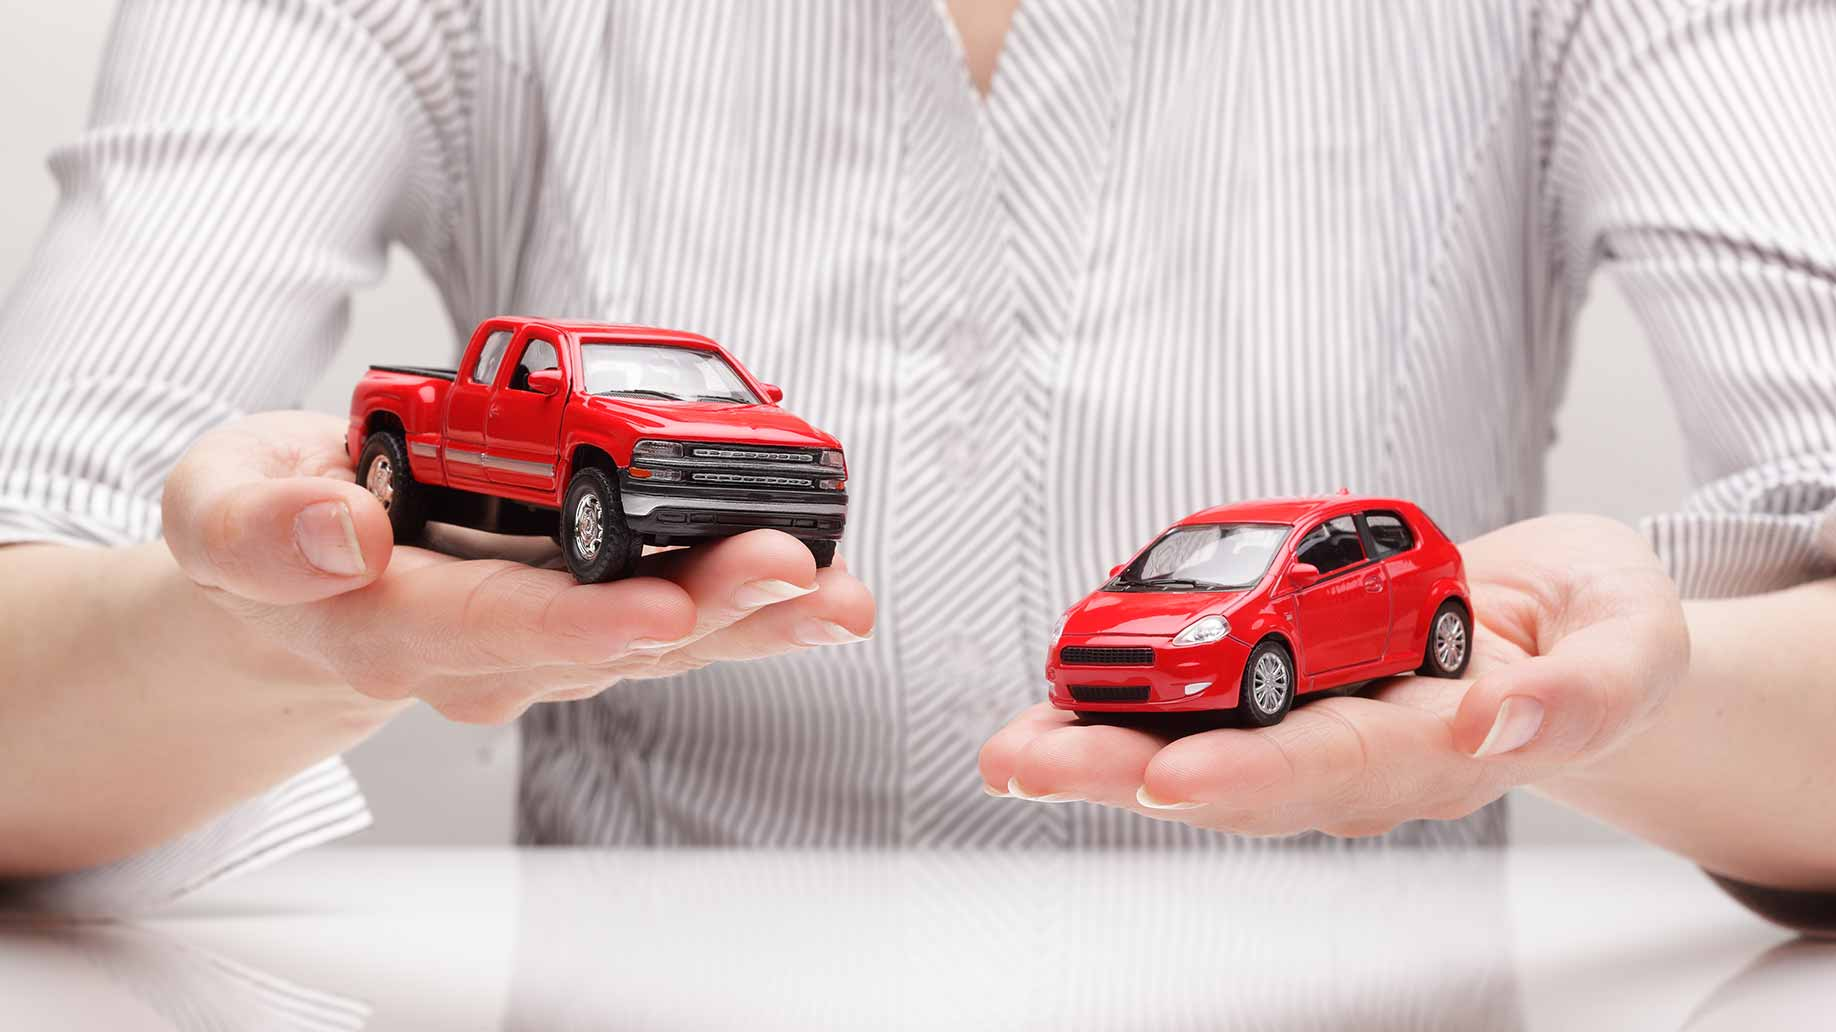 young man holding toy car and truck choosing between vehicles